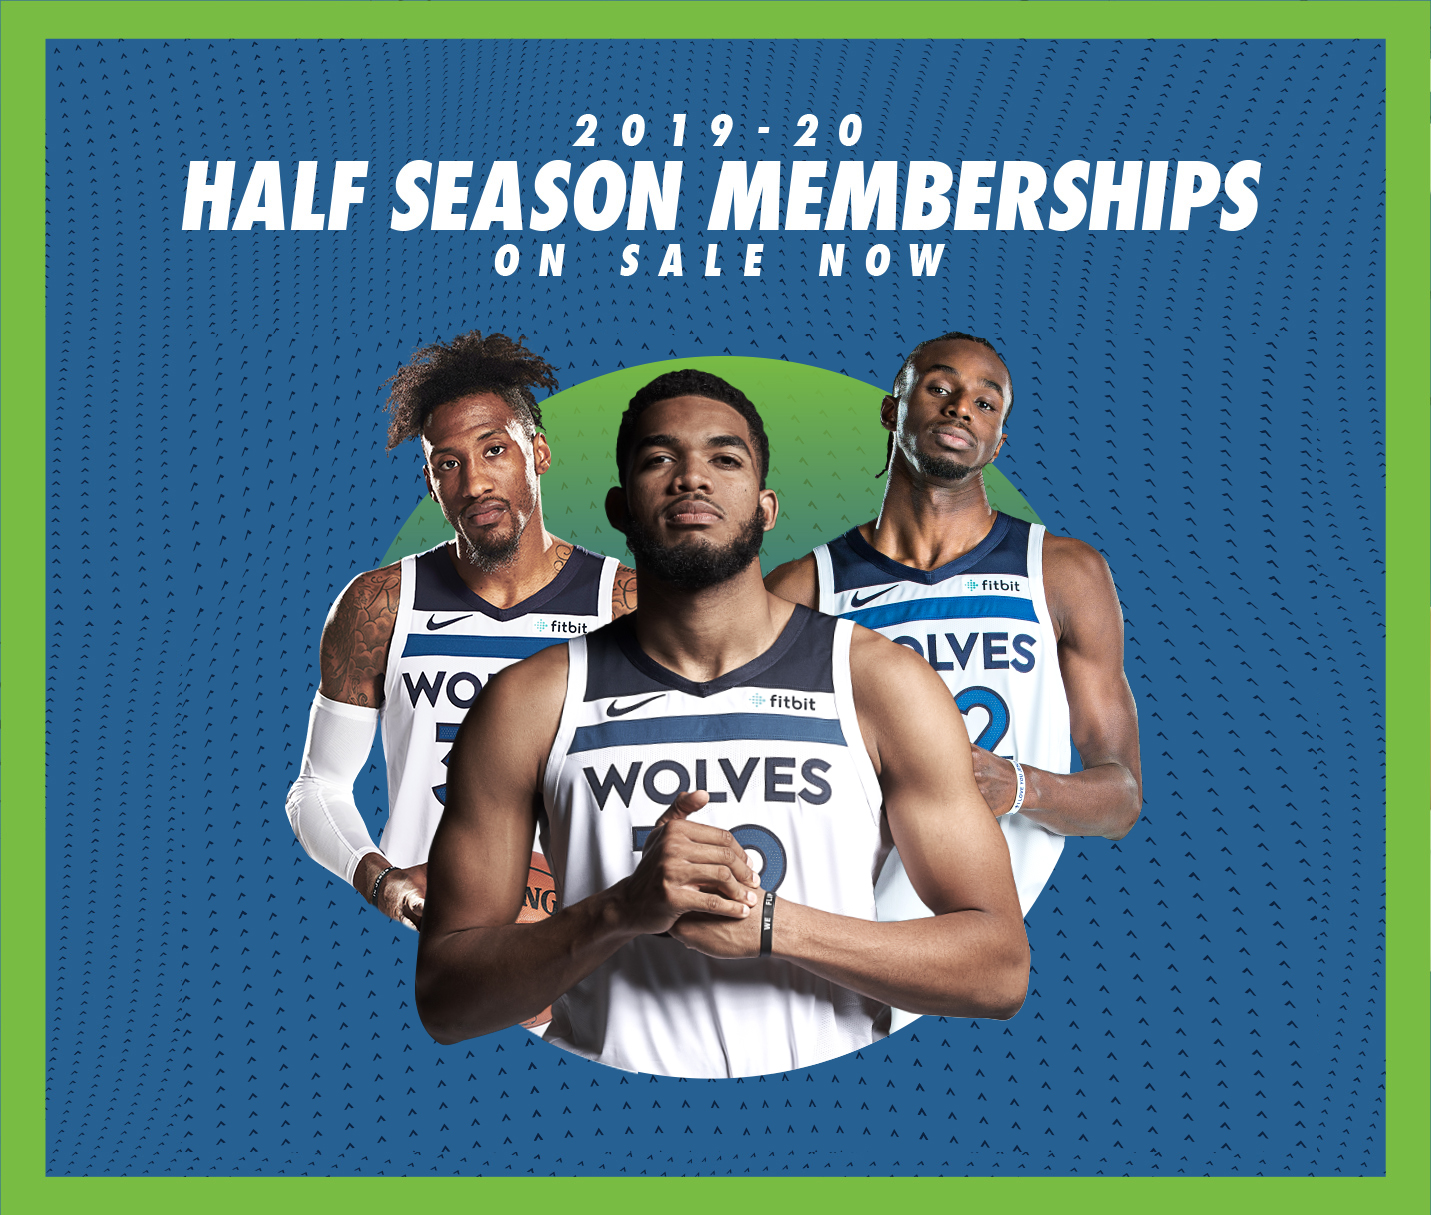 Half Season Memberships On Sale Now